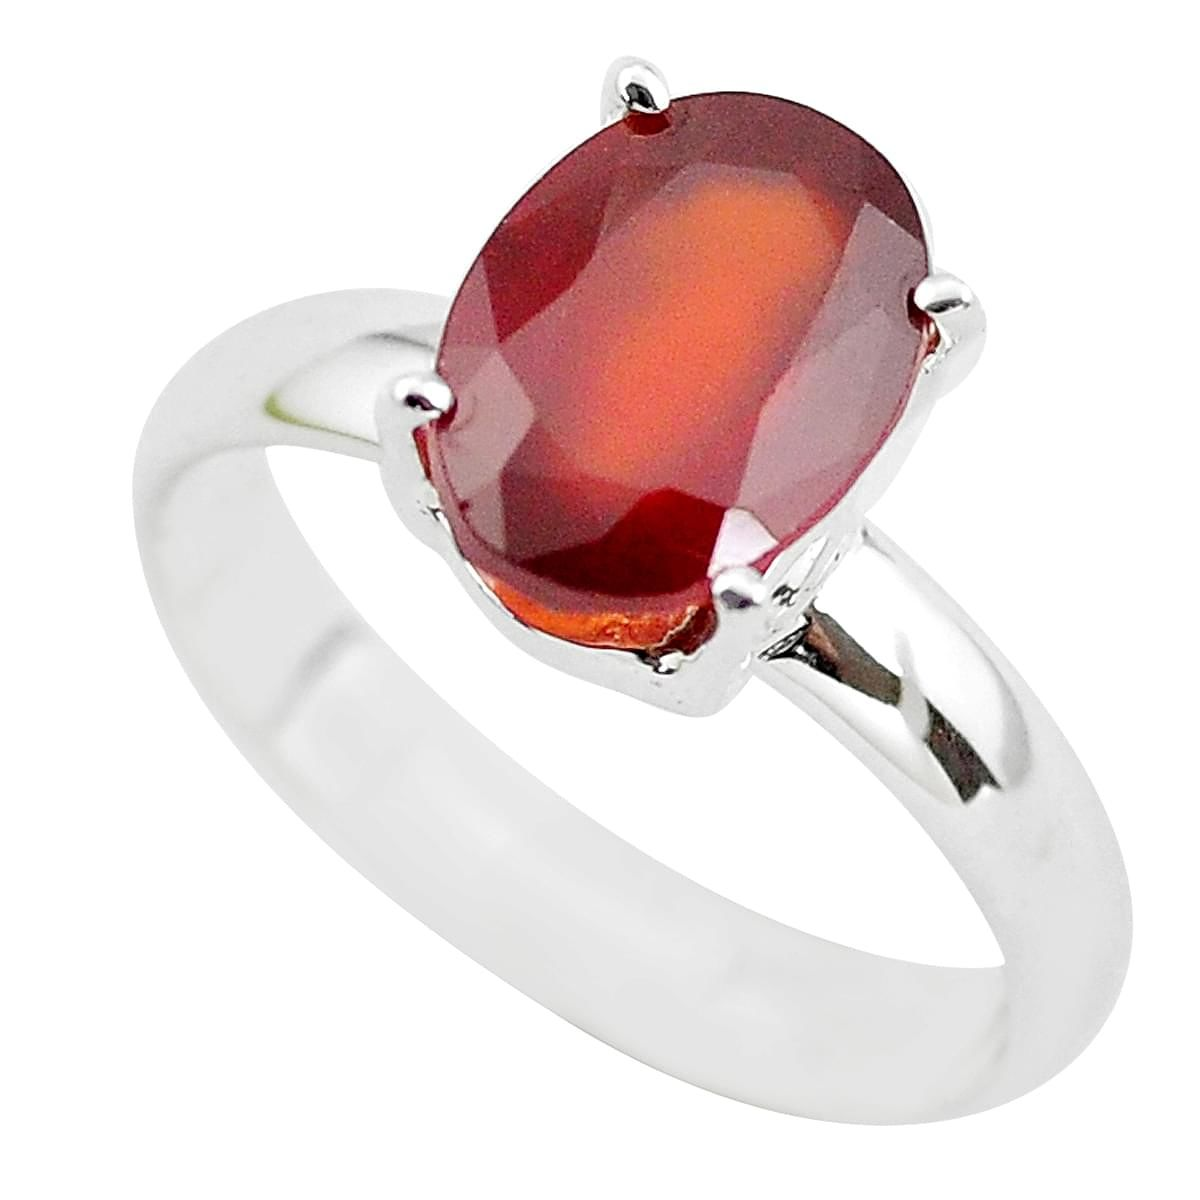 Details about  /Natural Hessonite Garnet Silver Ring 925 Sterling Silver Ring For Christmas Sale